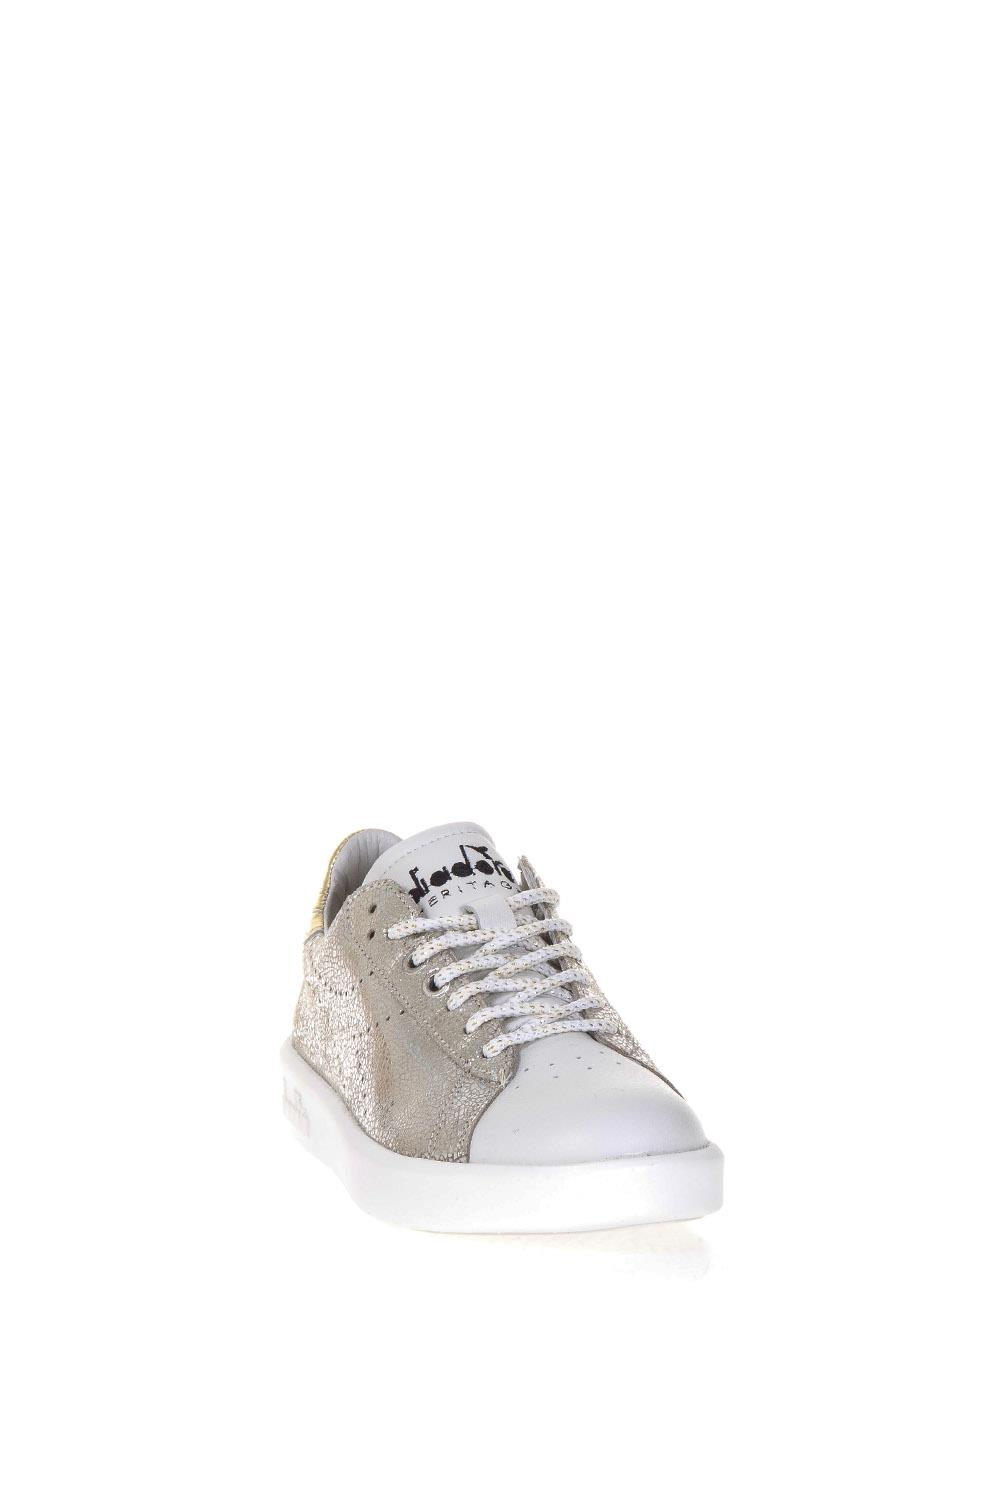 Pelle 2017 Low Top Ai Diadora In Glitter Sneakers qPwvTRf af827b76348